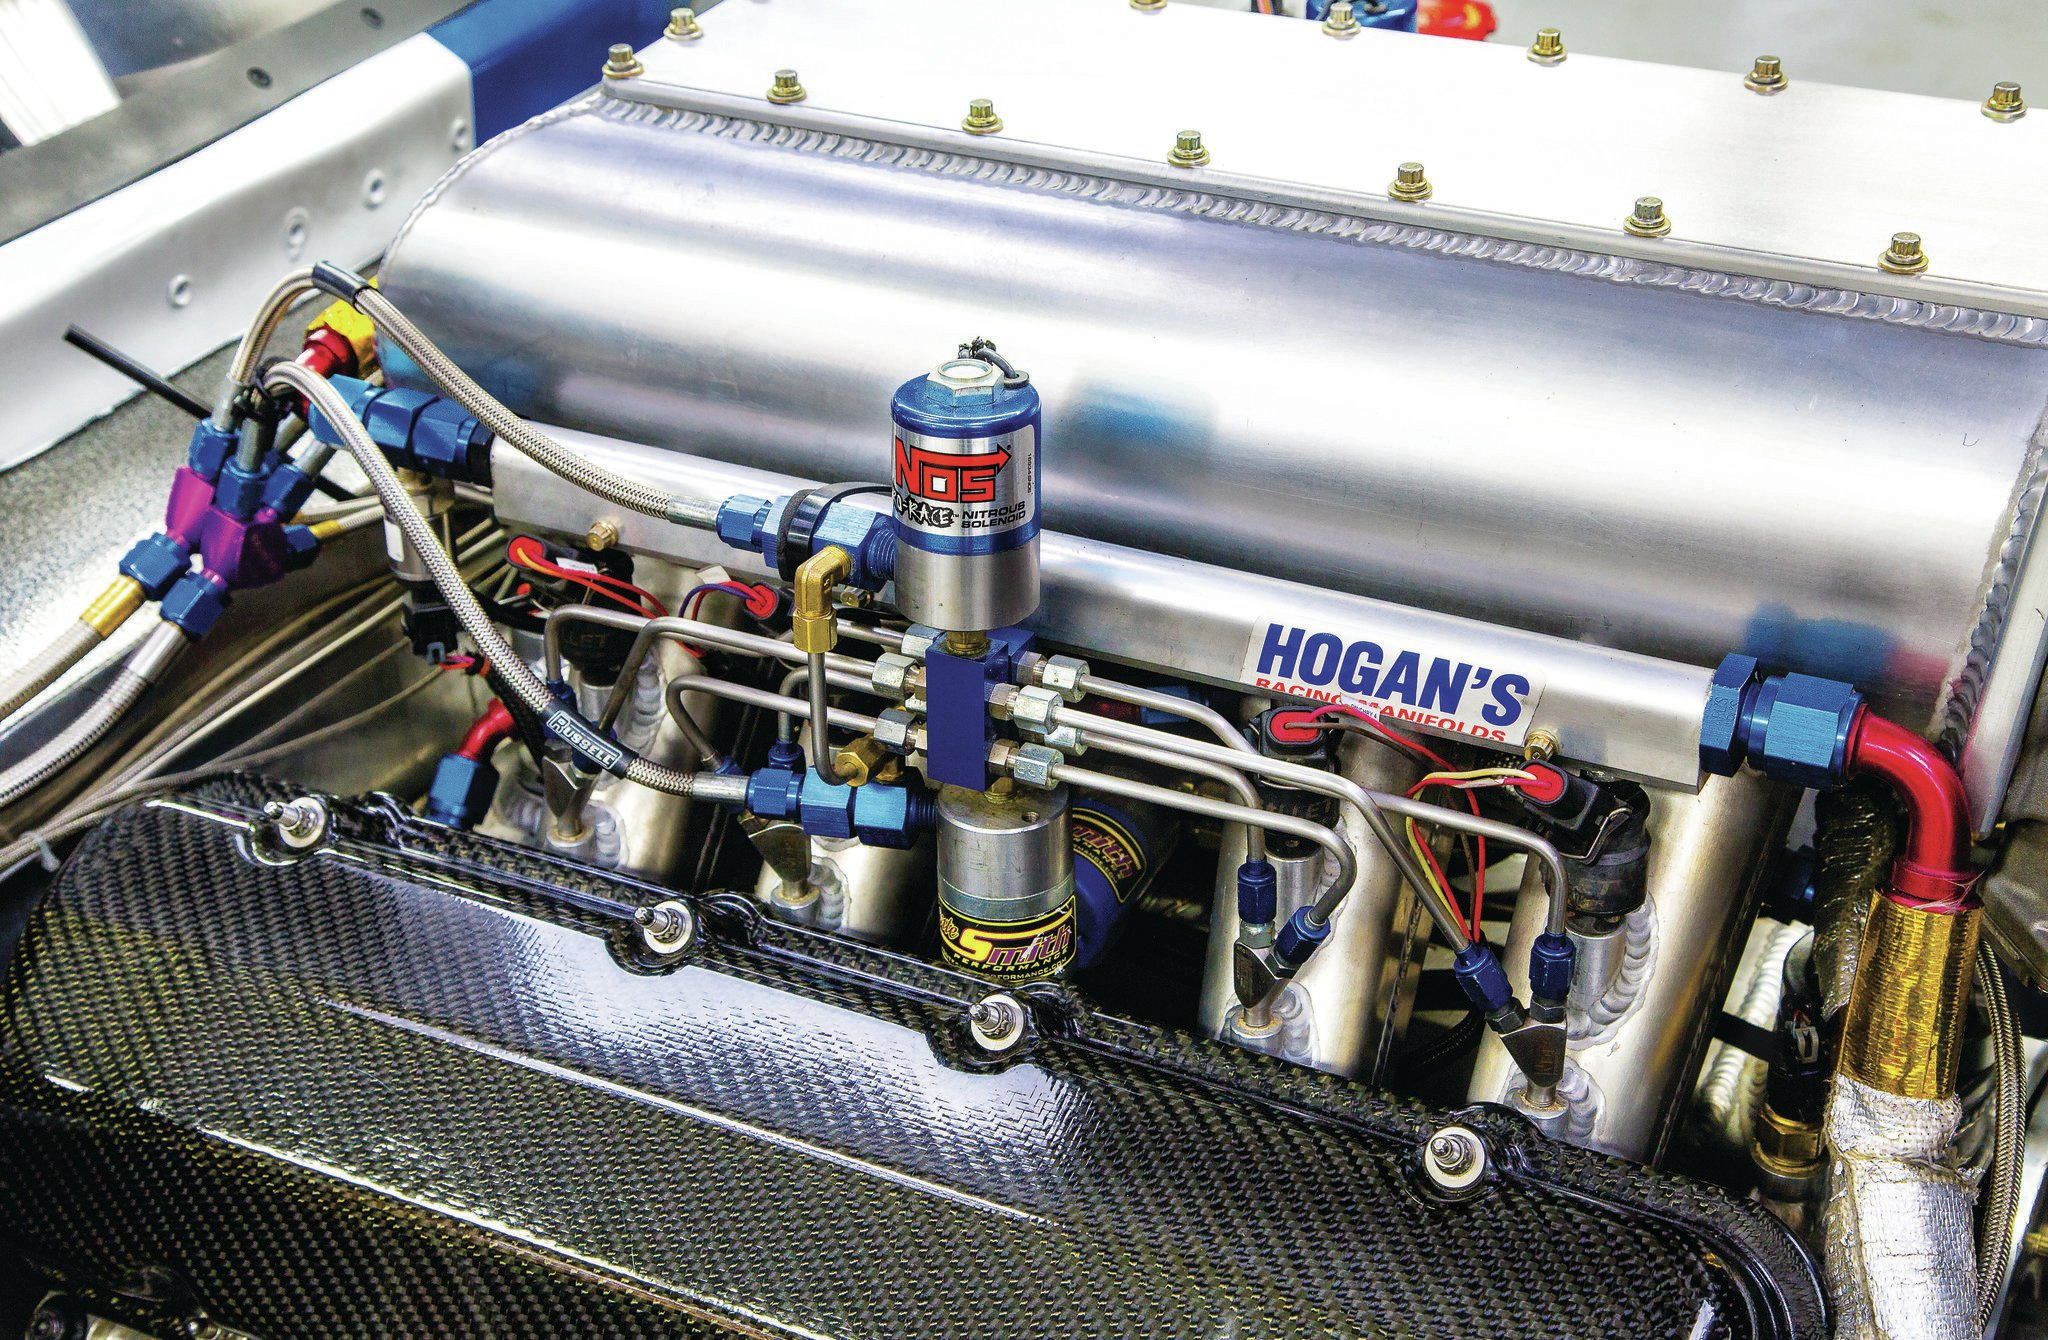 The Hogan intake has two GM Z06 drive-by-wire throttle-bodies and is plumbed for four stages of NOS Nitrous. It's all controlled by a Holley Dominator ECU that also kept Dave informed inside the car through a dash-mounted digital gauge package.